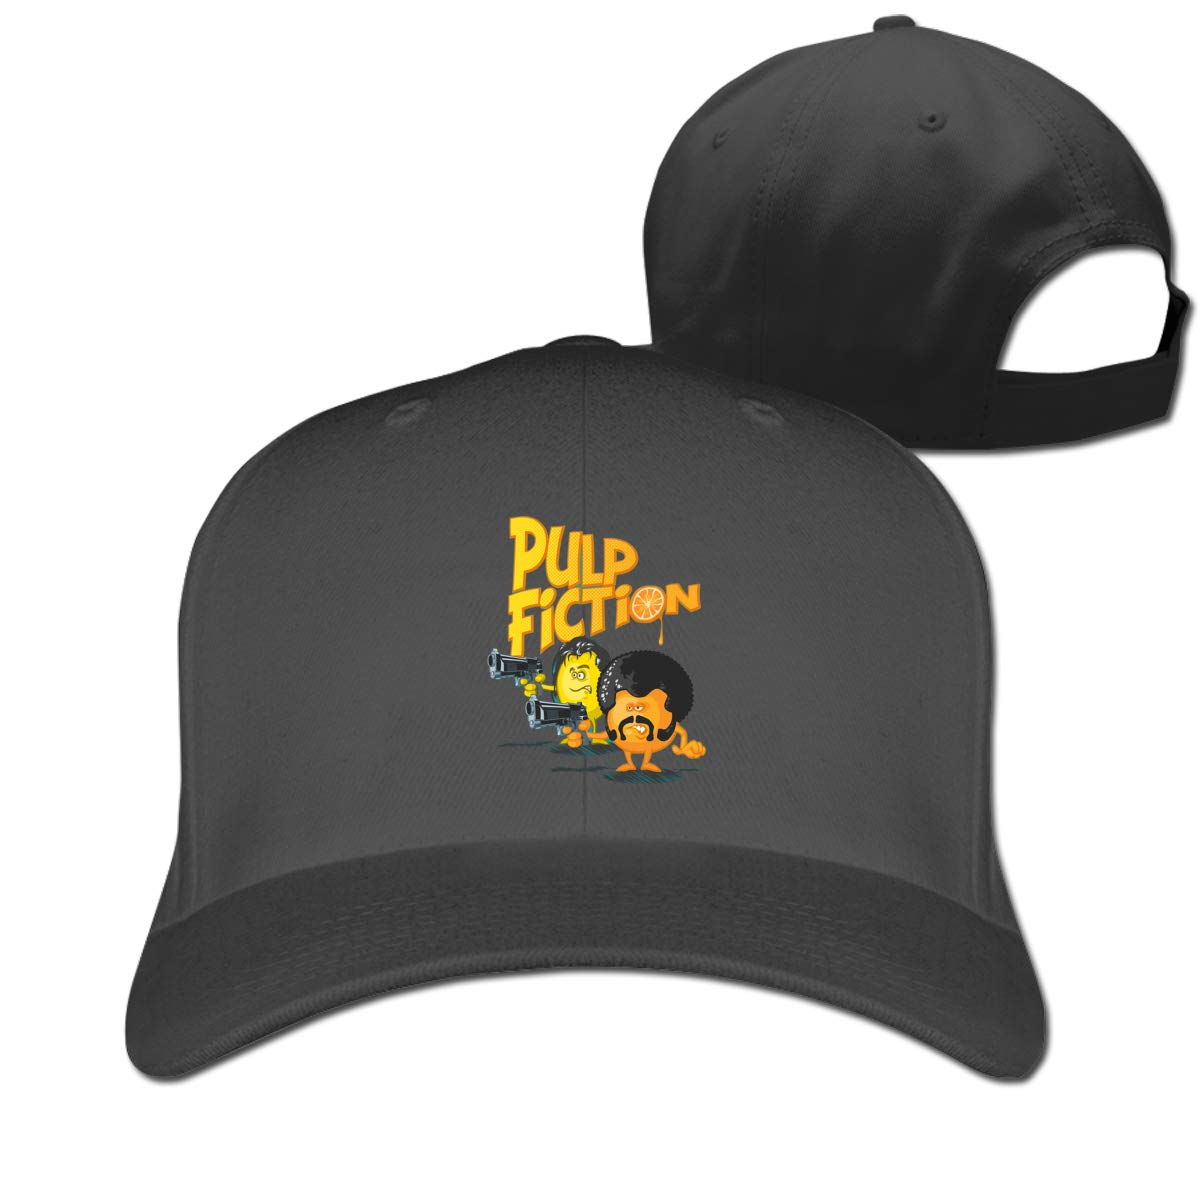 Pulp Fiction Classic Adjustable Cotton Baseball Caps Trucker Driver Hat Outdoor Cap Fitted Hats Dad Hat Black